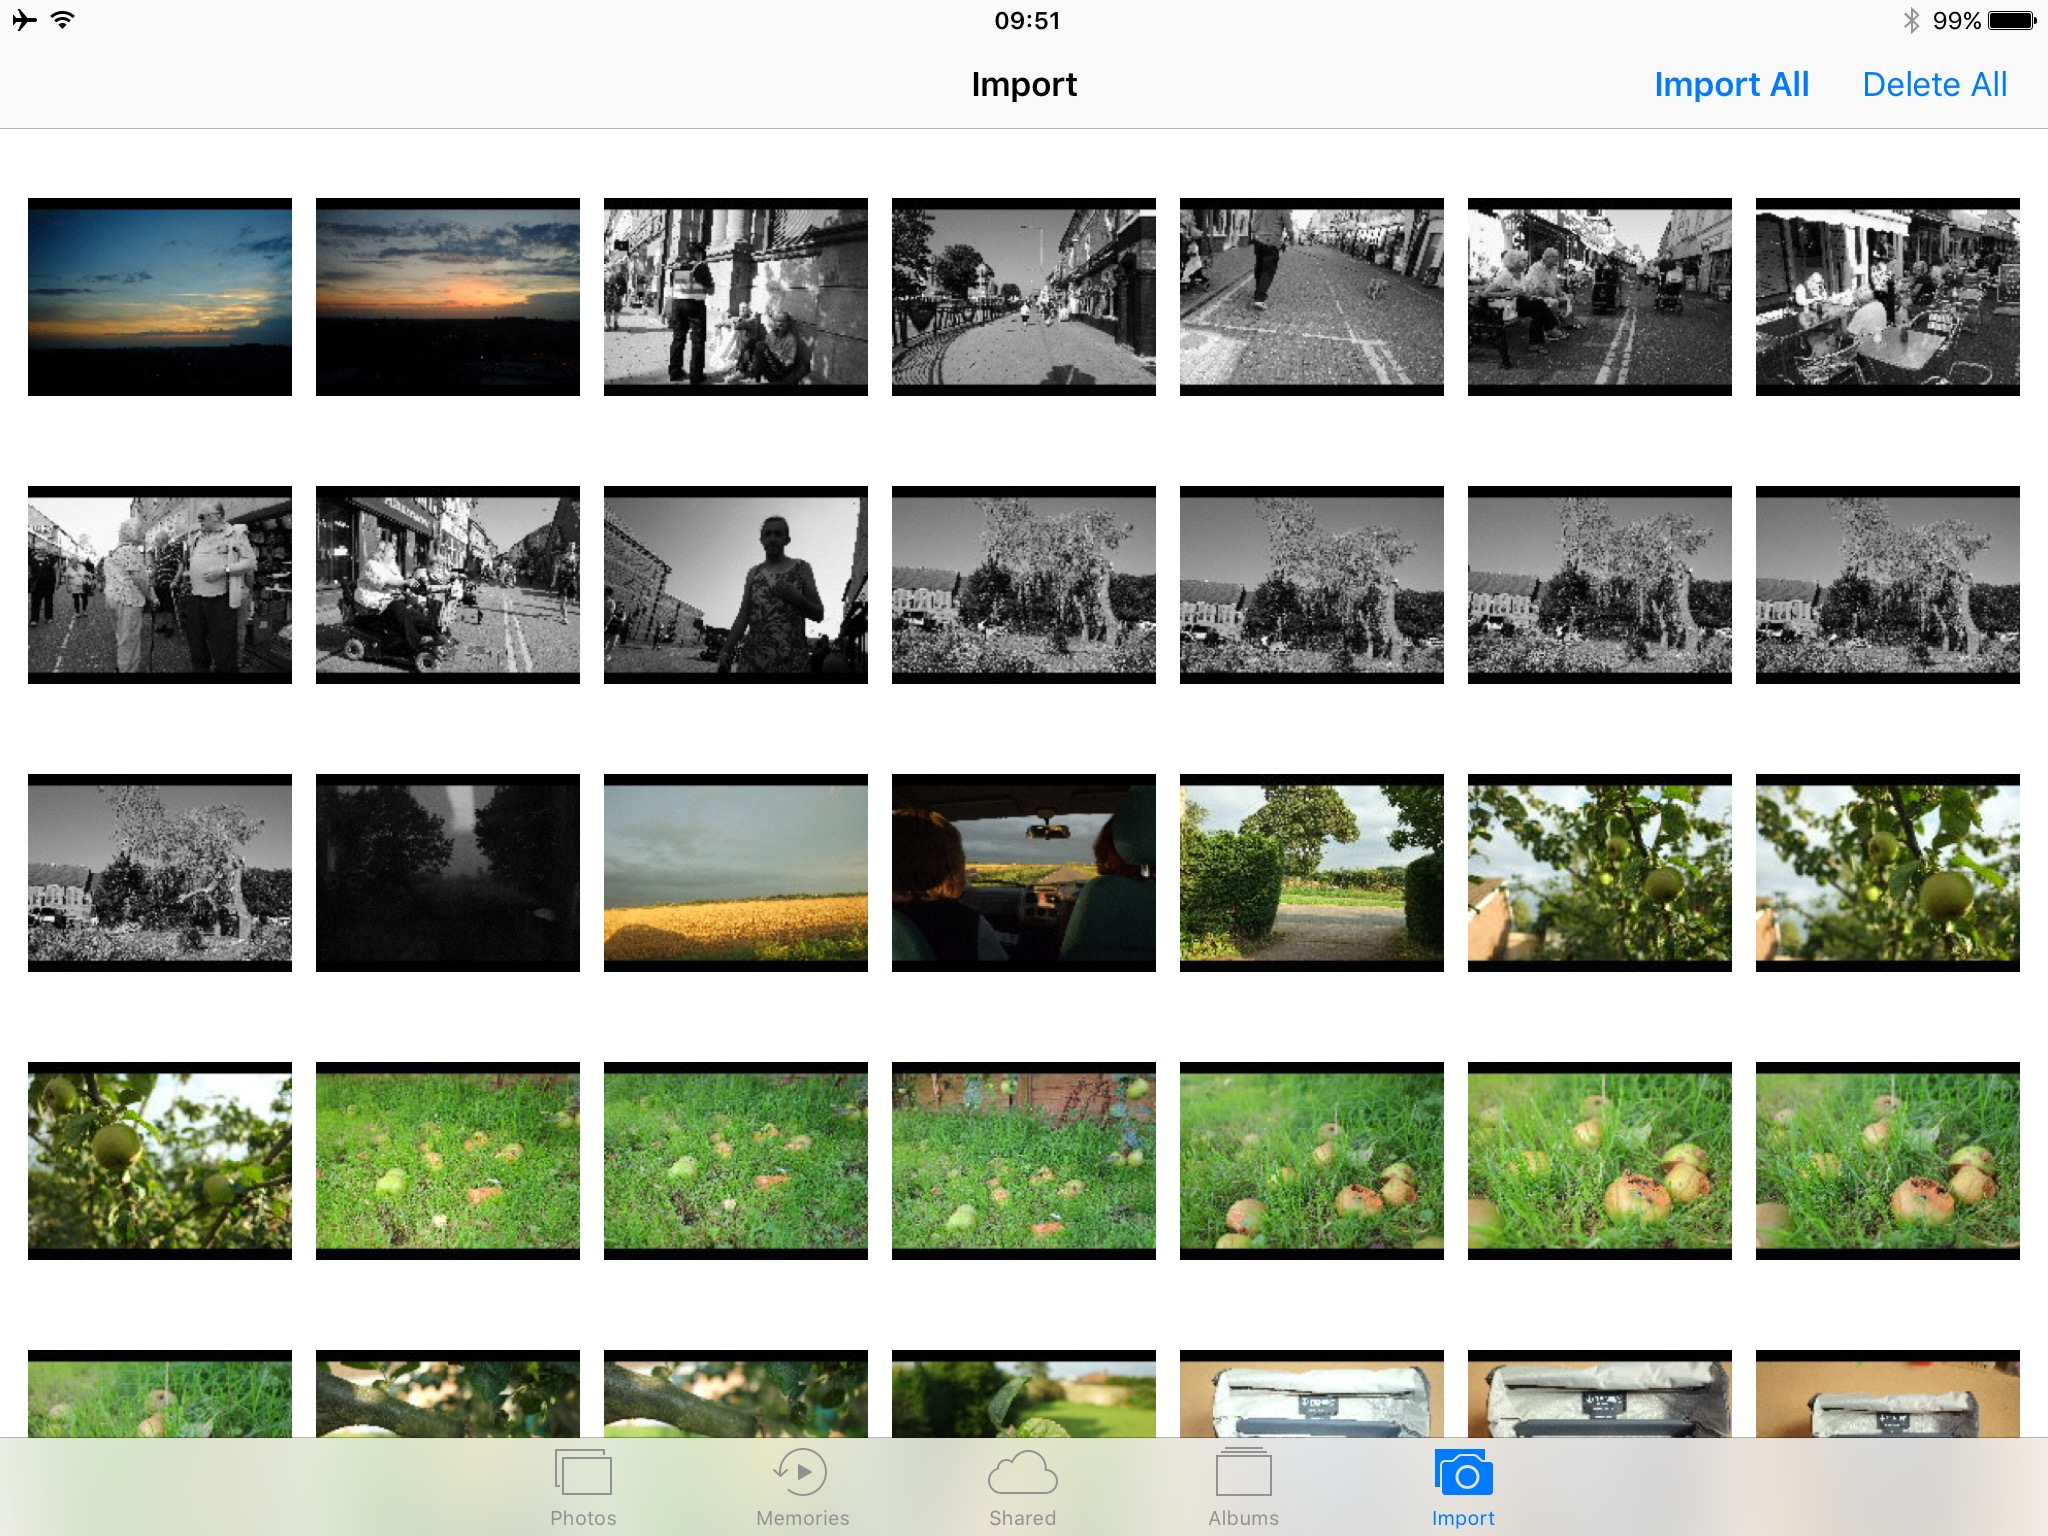 Importing photos on iOS. Some of these files are raw+JPEG pairs, some JPEGs, but there's no way of telling which is which